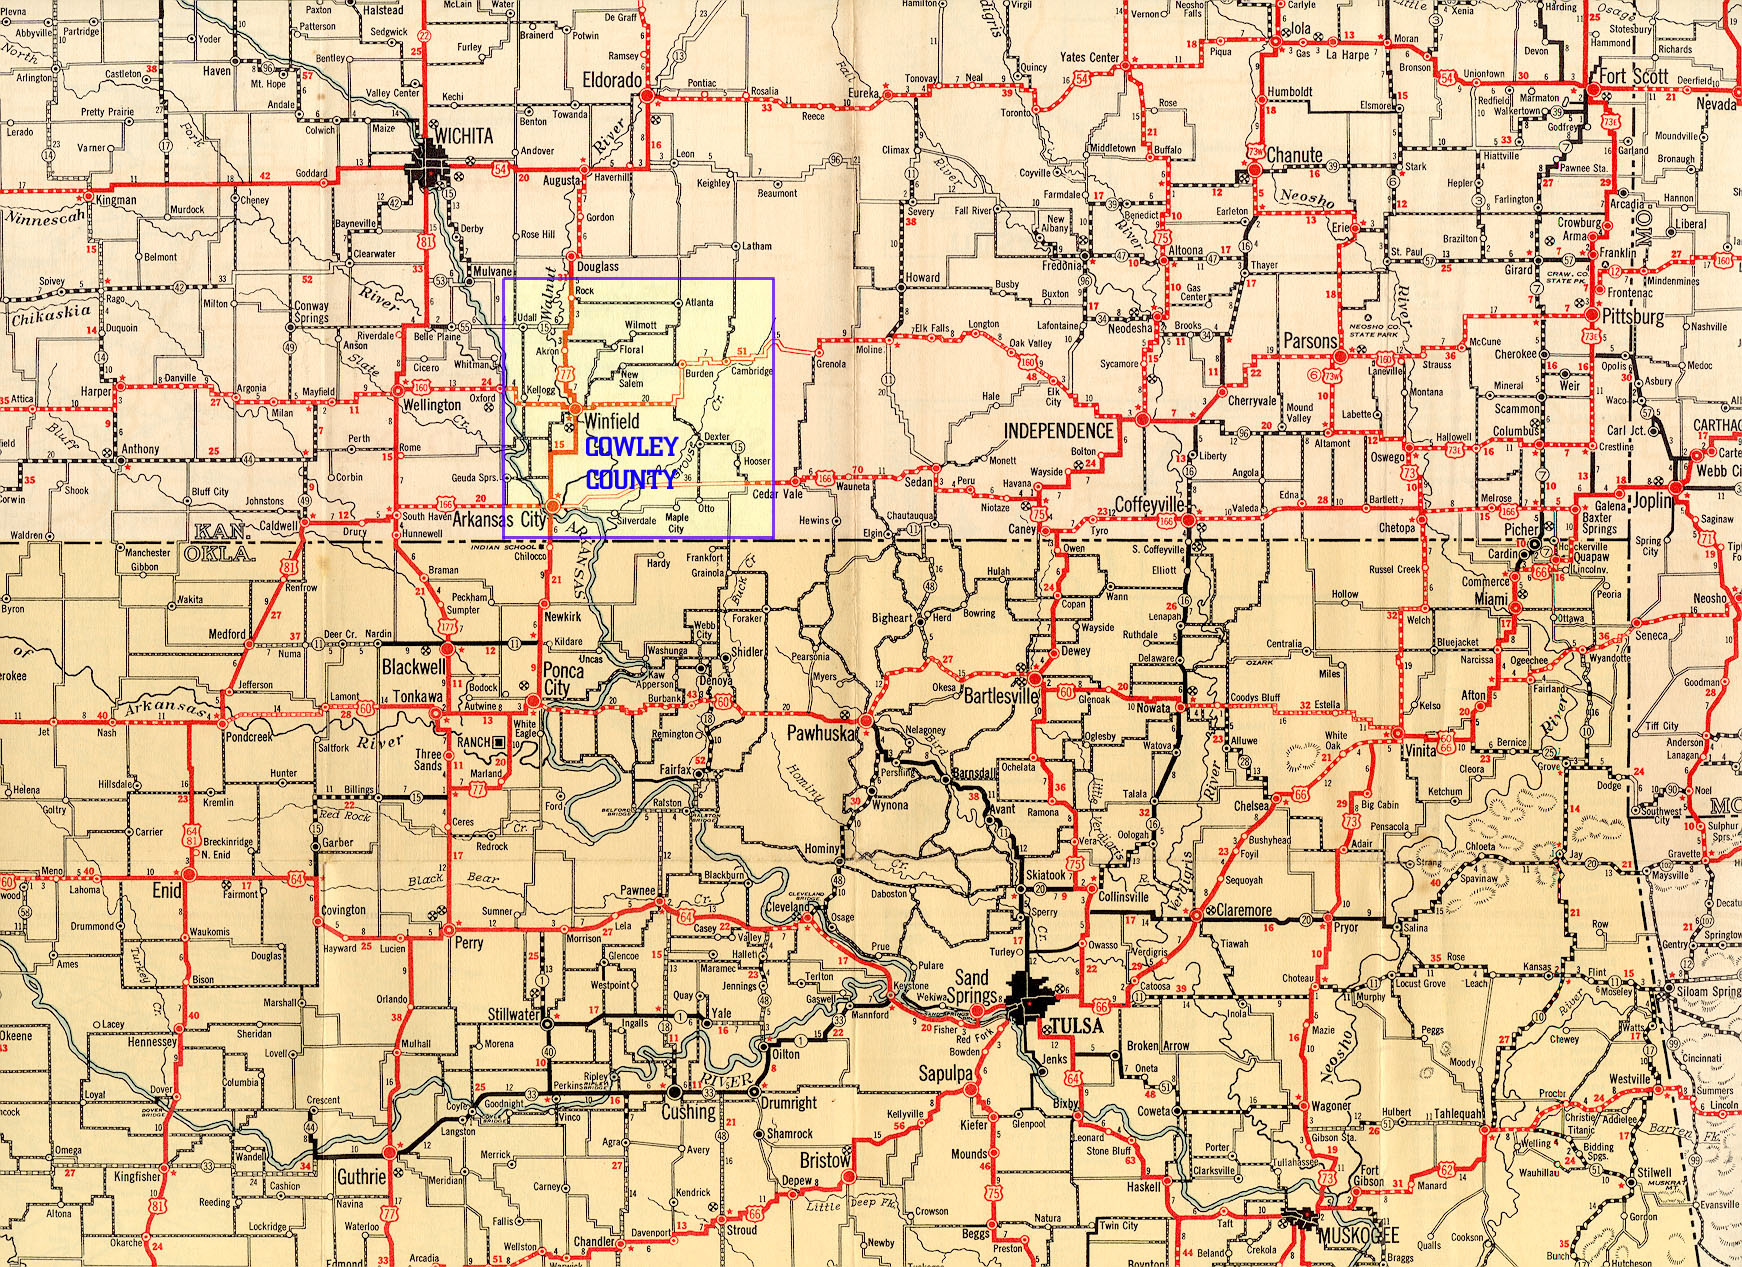 Texaco Highway Map Of Southern Kansas And Northern Oklahoma - Oklahoma highways map